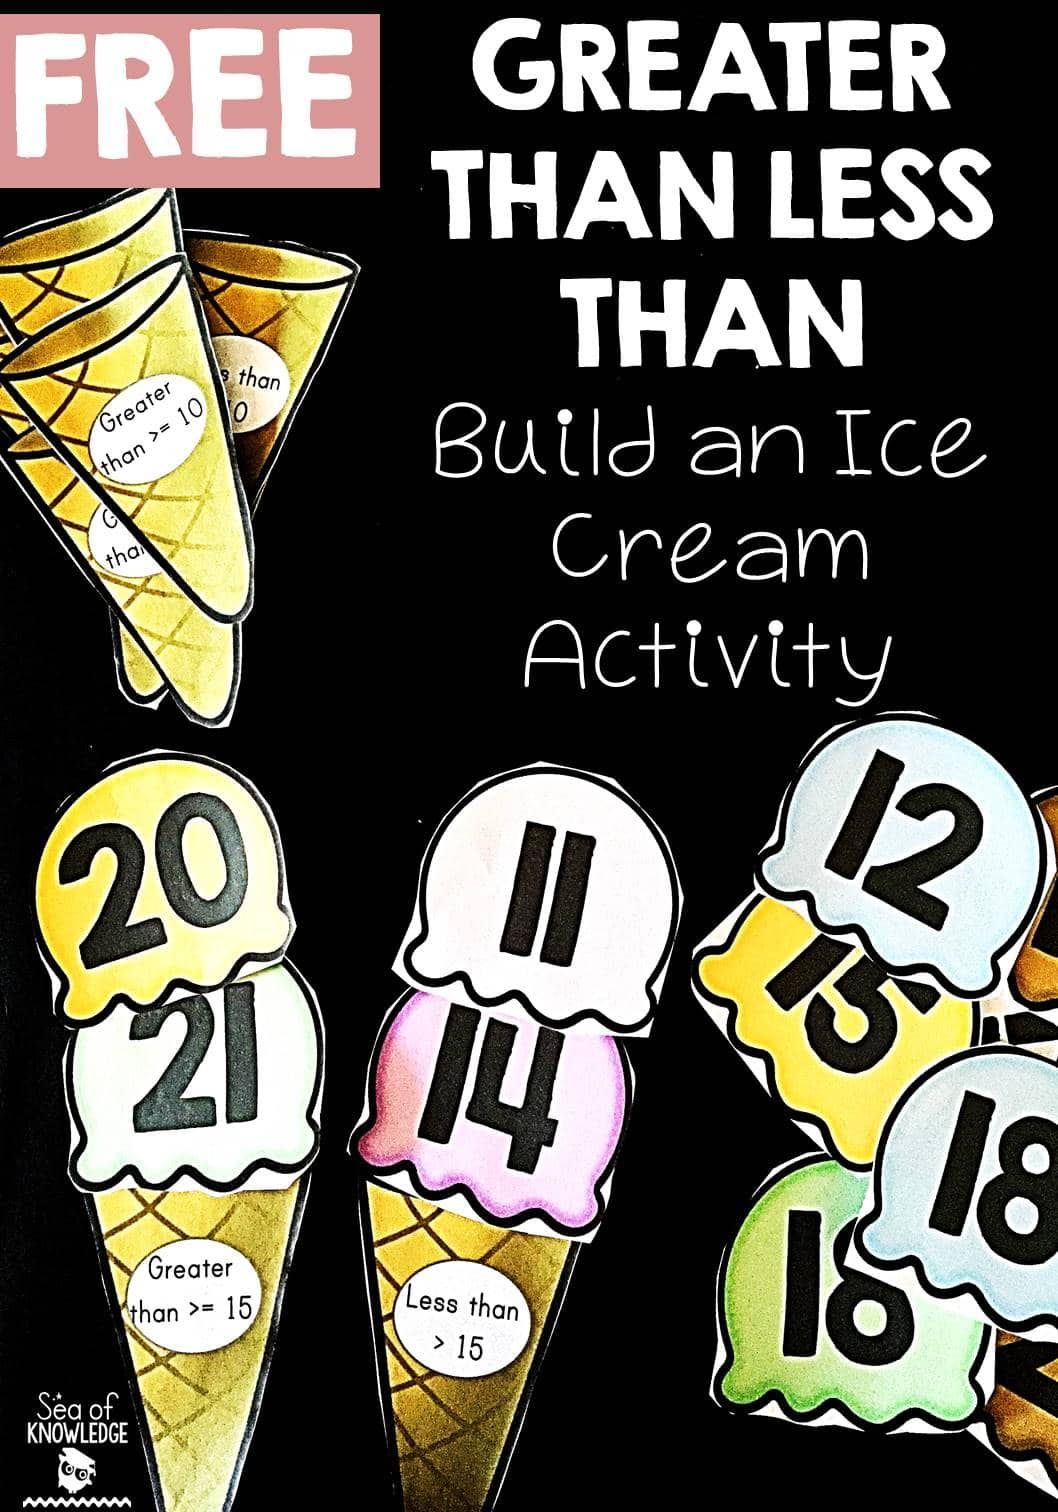 Less than Greater than Math Activity with Ice Cream!